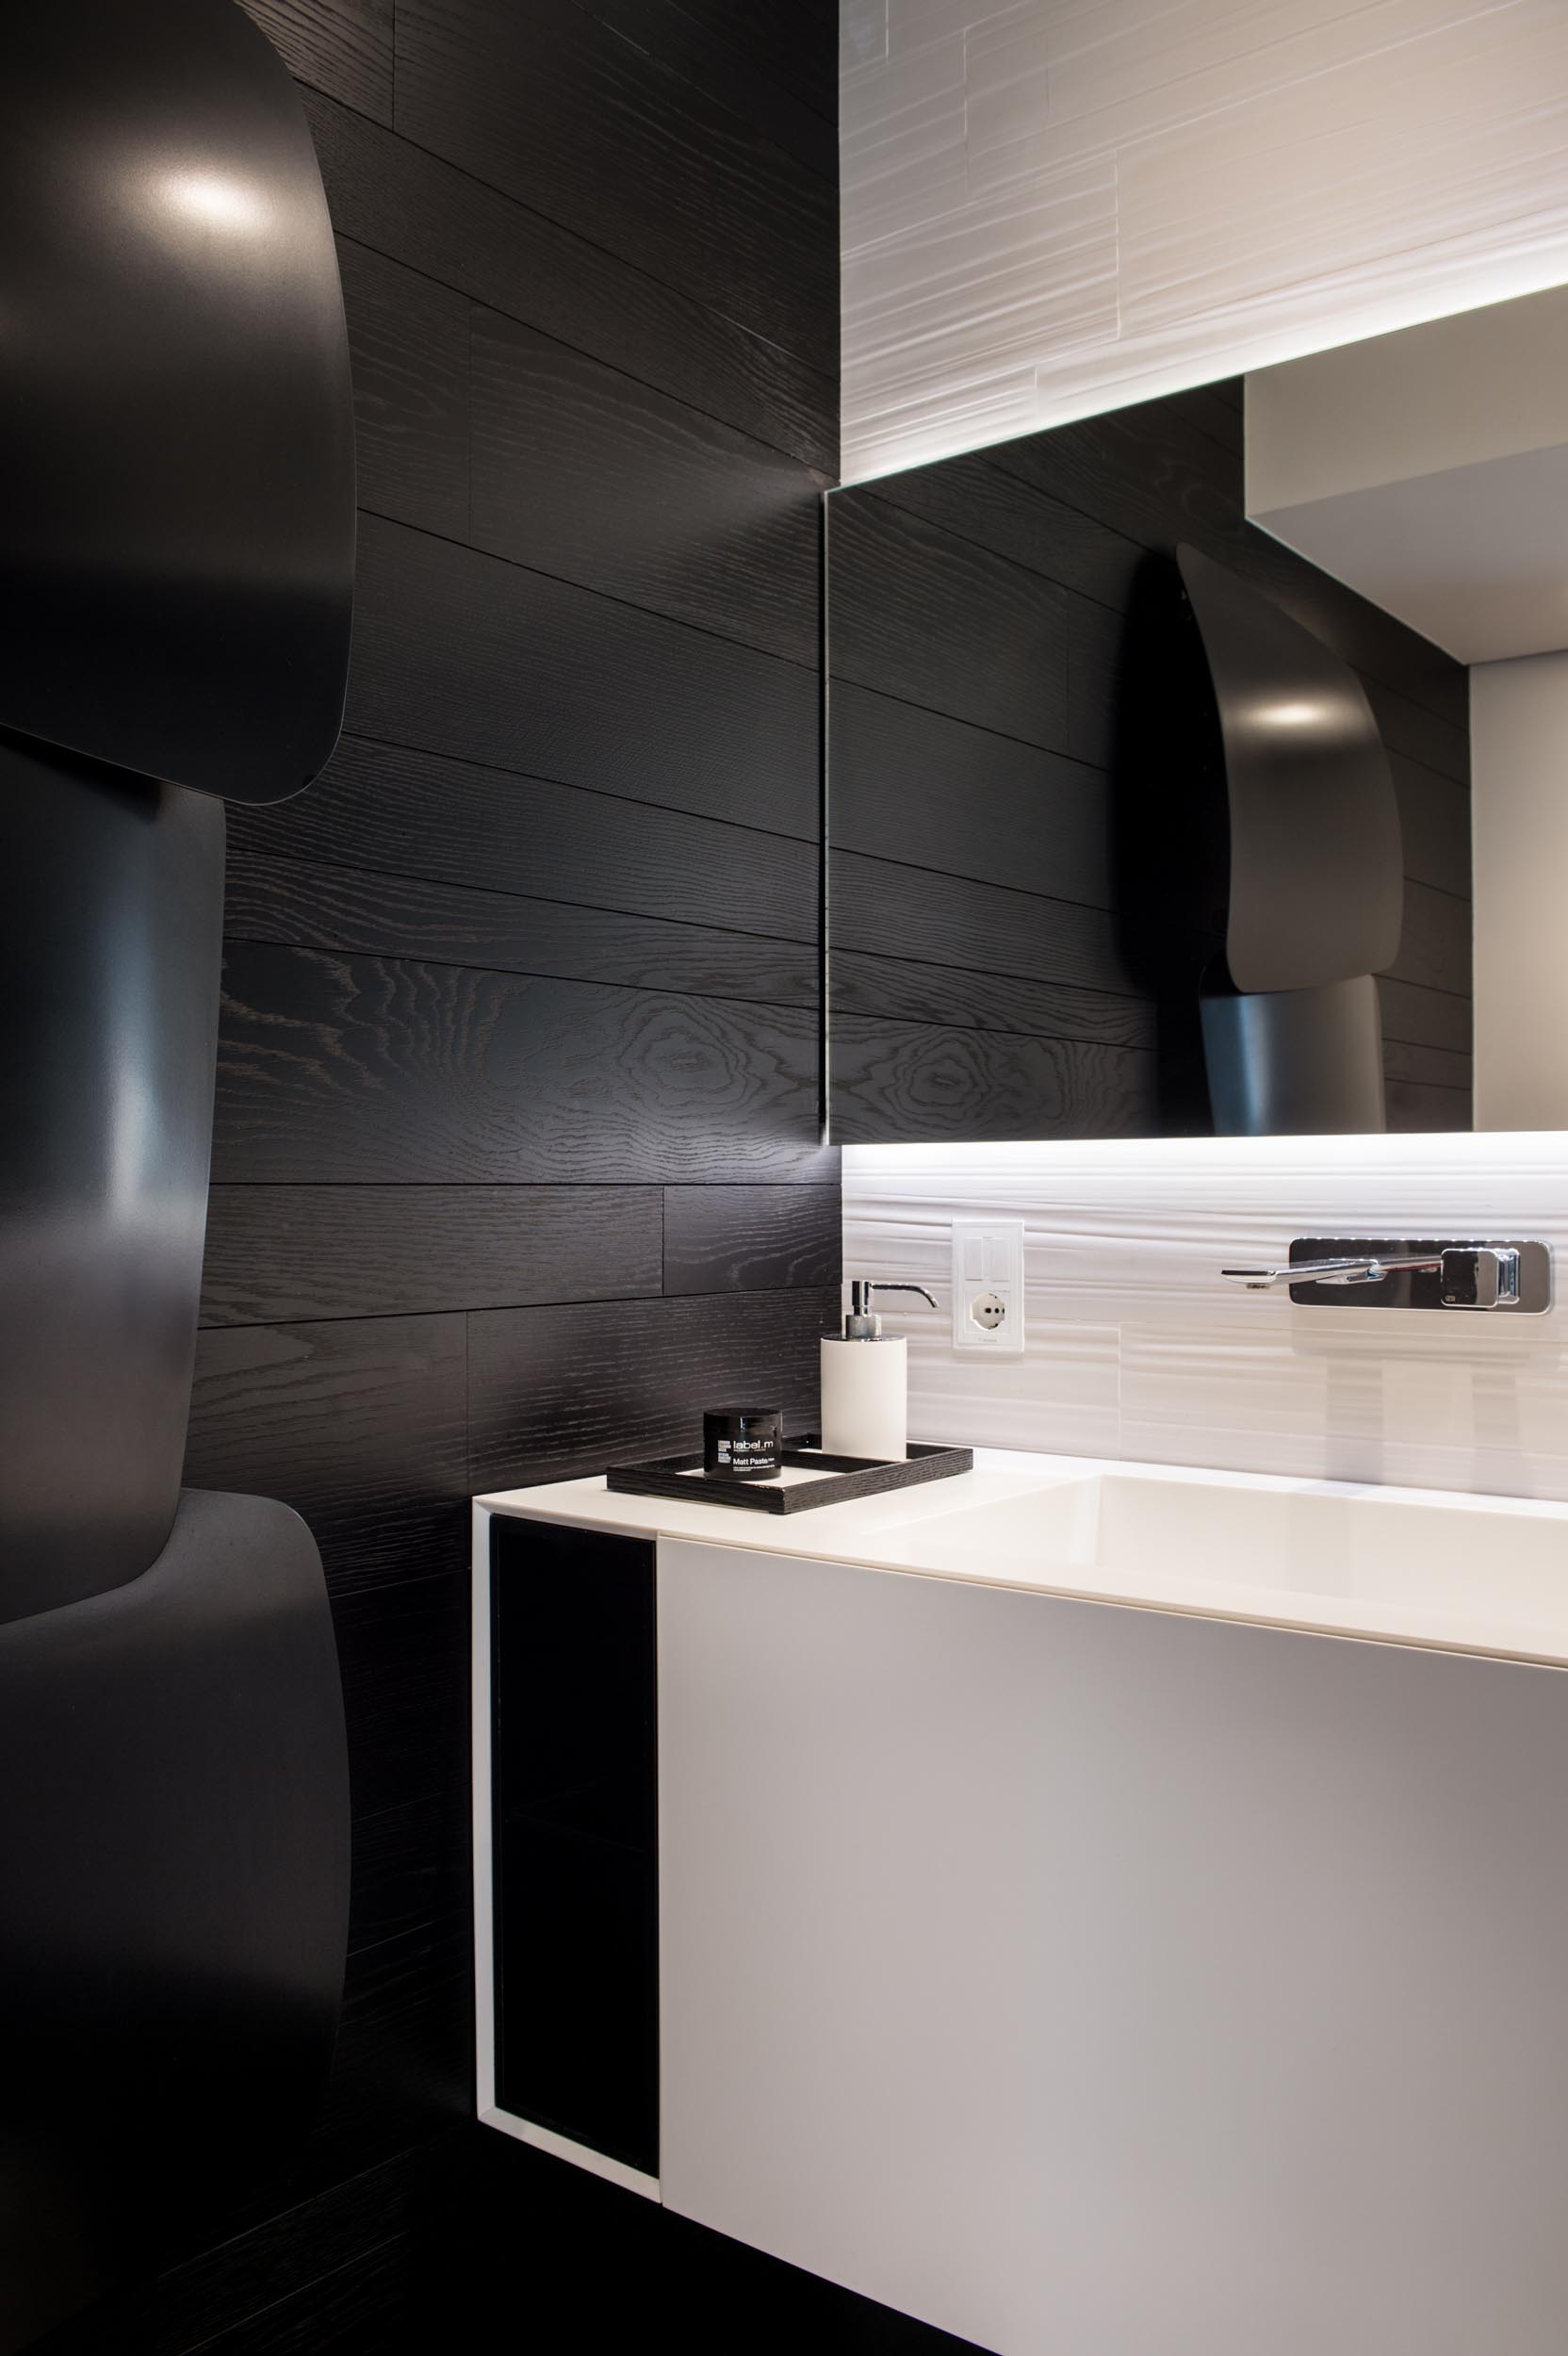 A modern bathroom with a white vanity and backlit mirror, and a contrasting black accent wall.